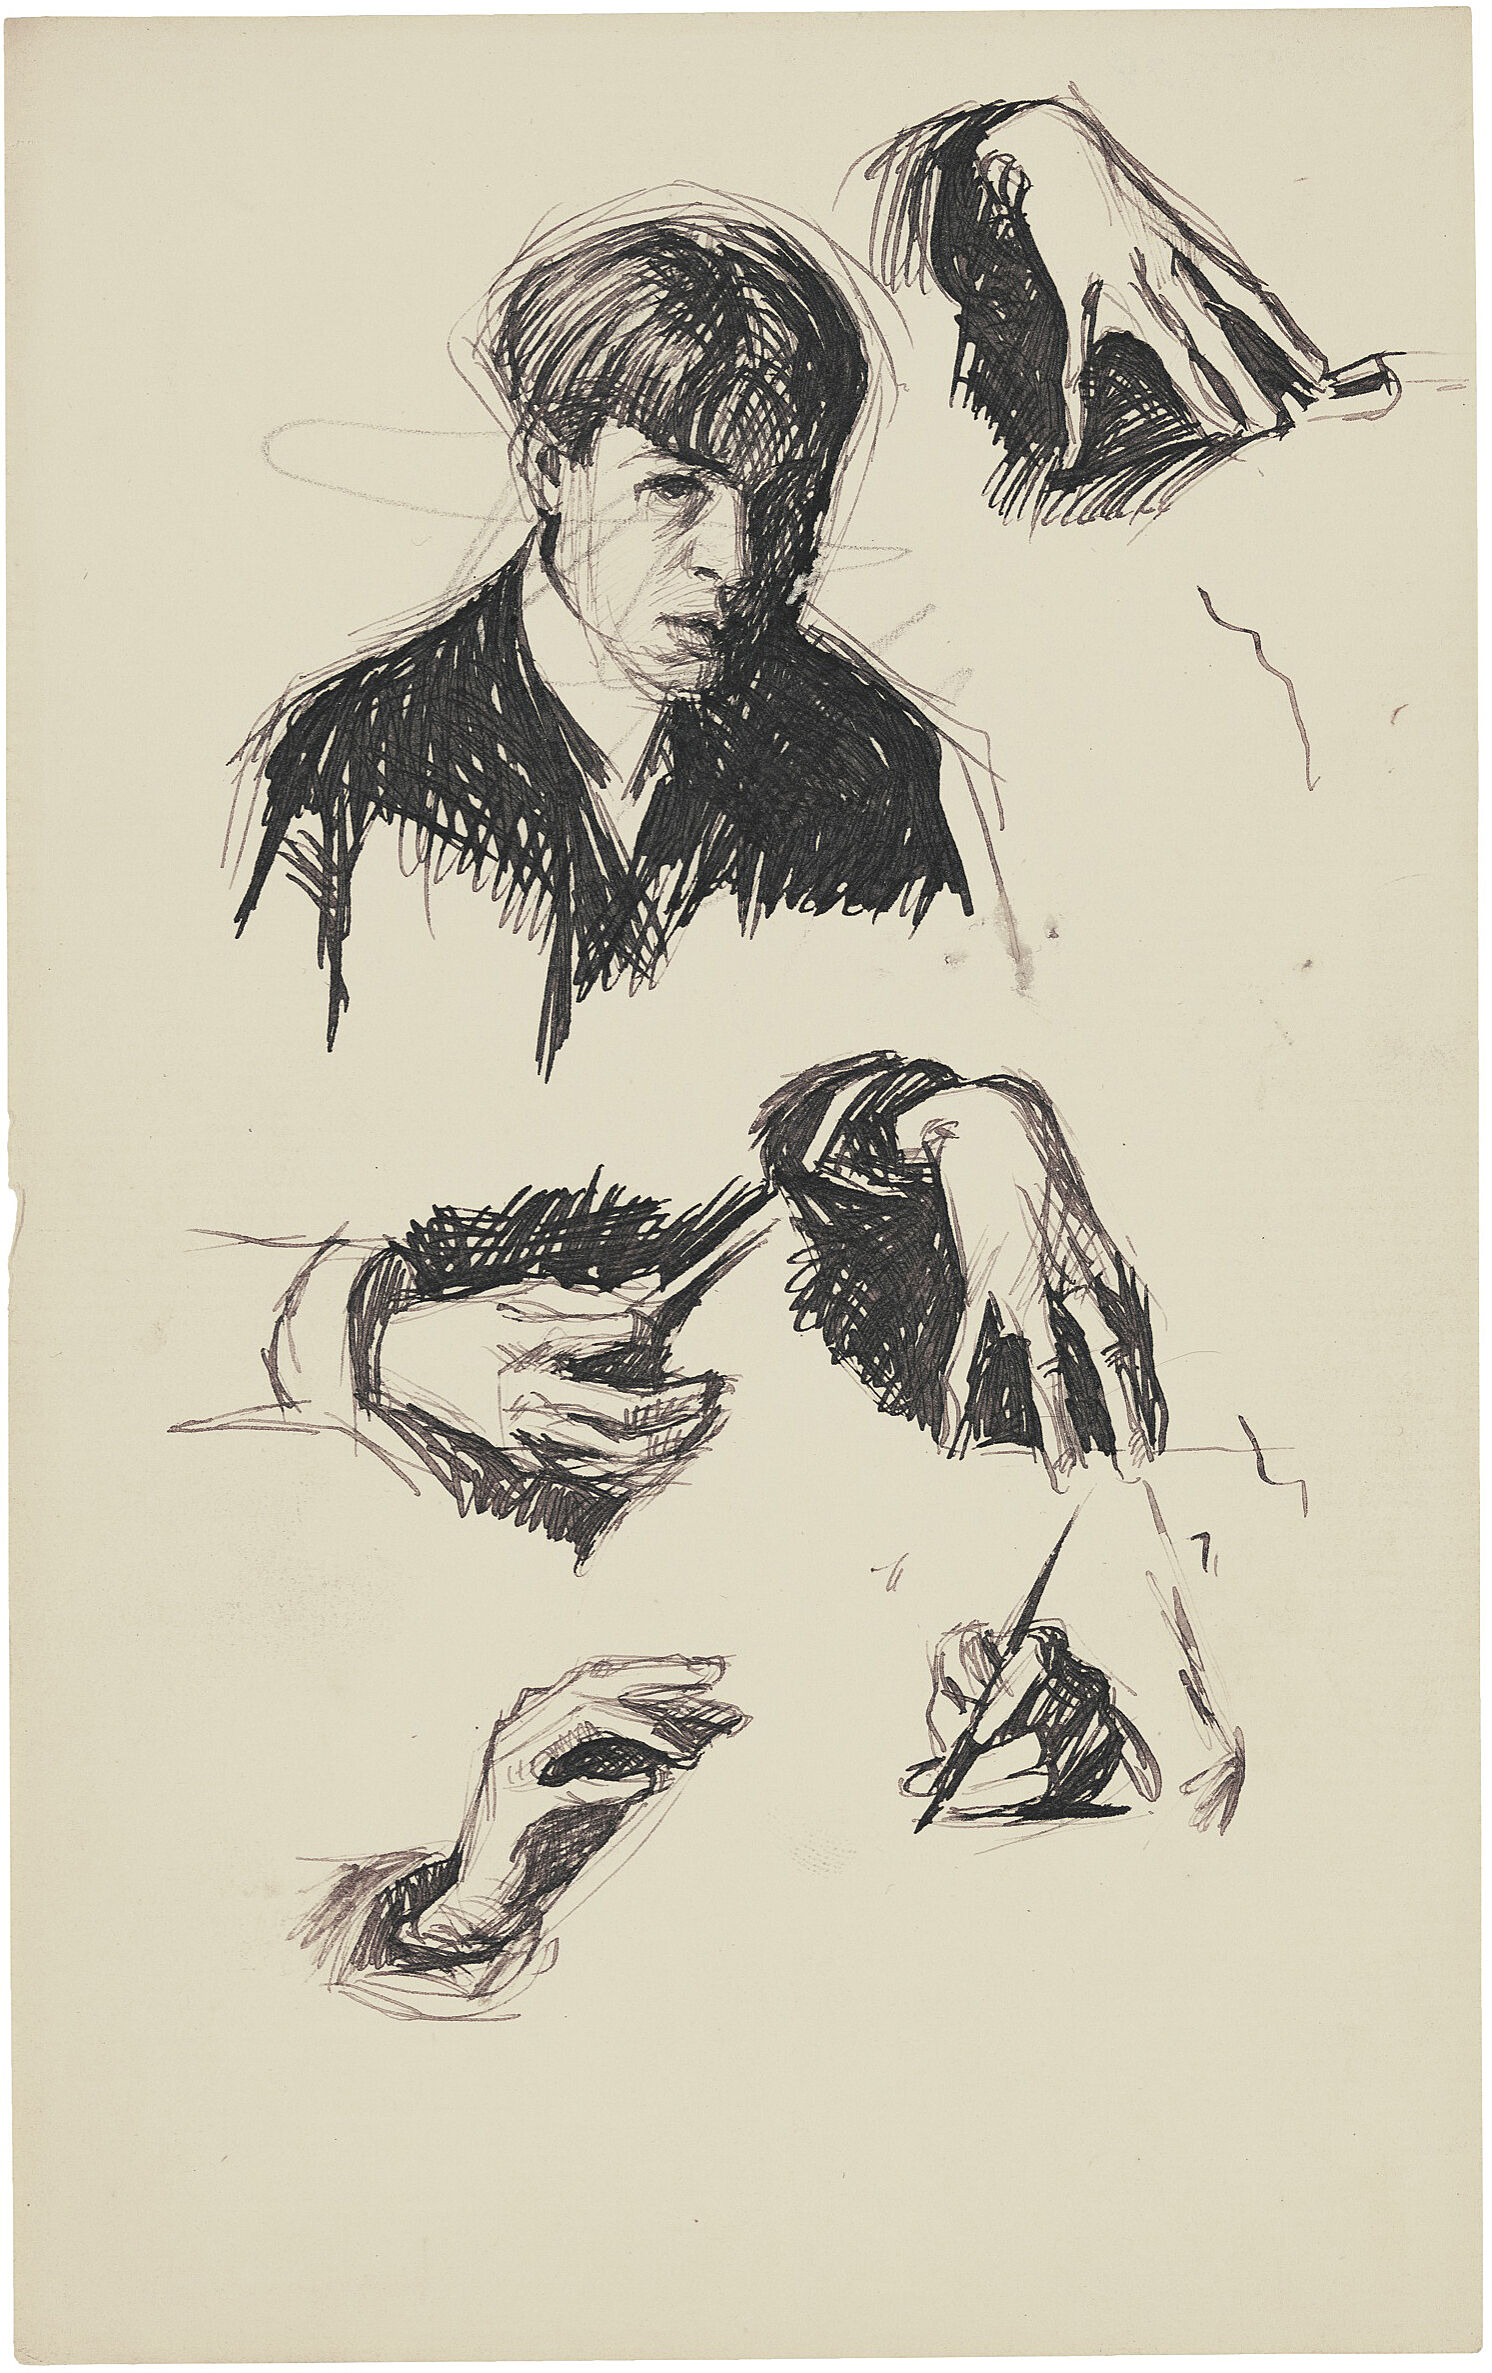 A drawing of Edward Hopper and 5 studies of his hands.